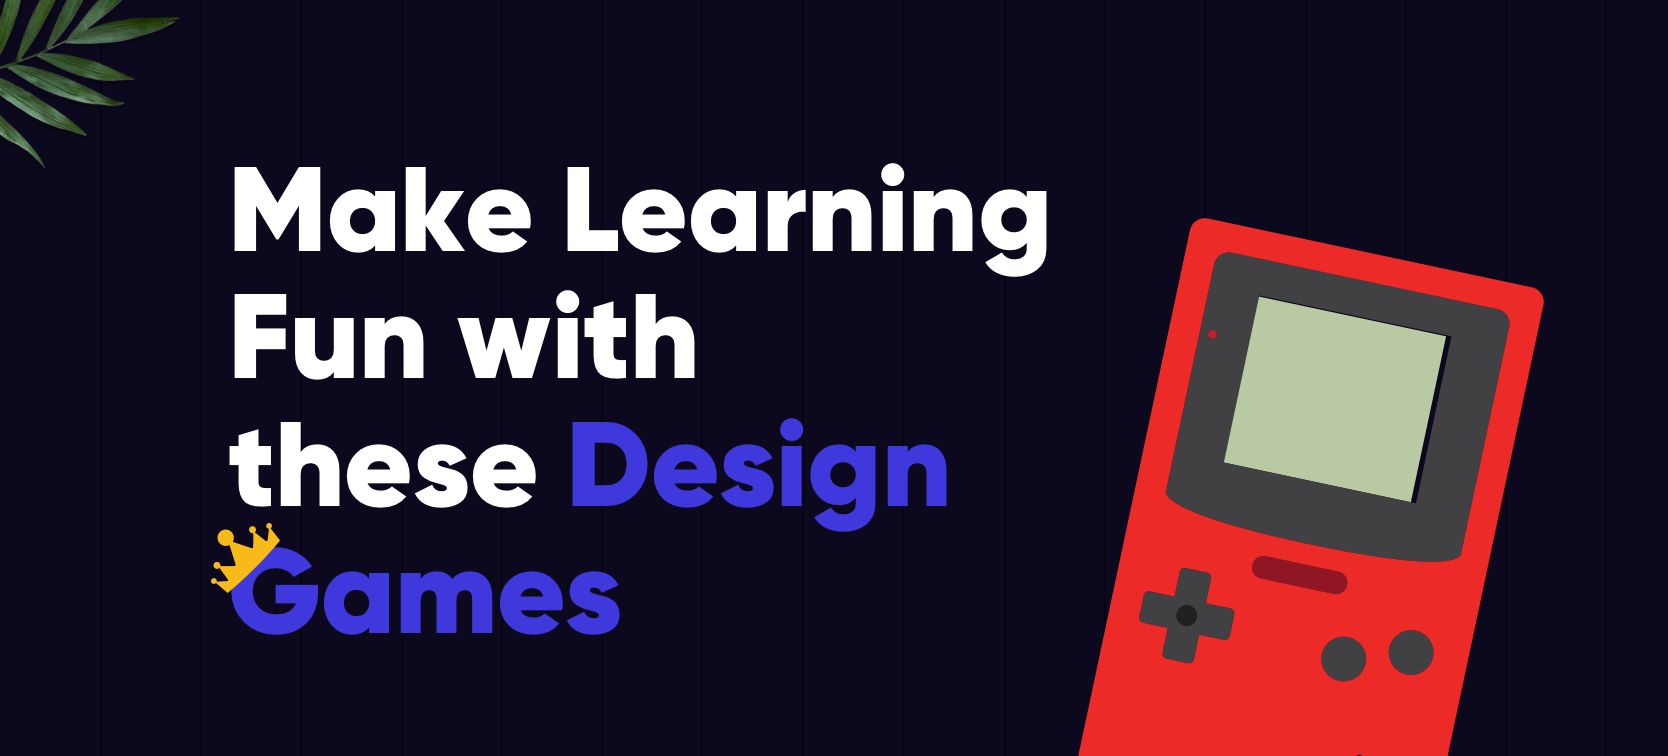 Make Learning Fun With These Design Games Muzli Design